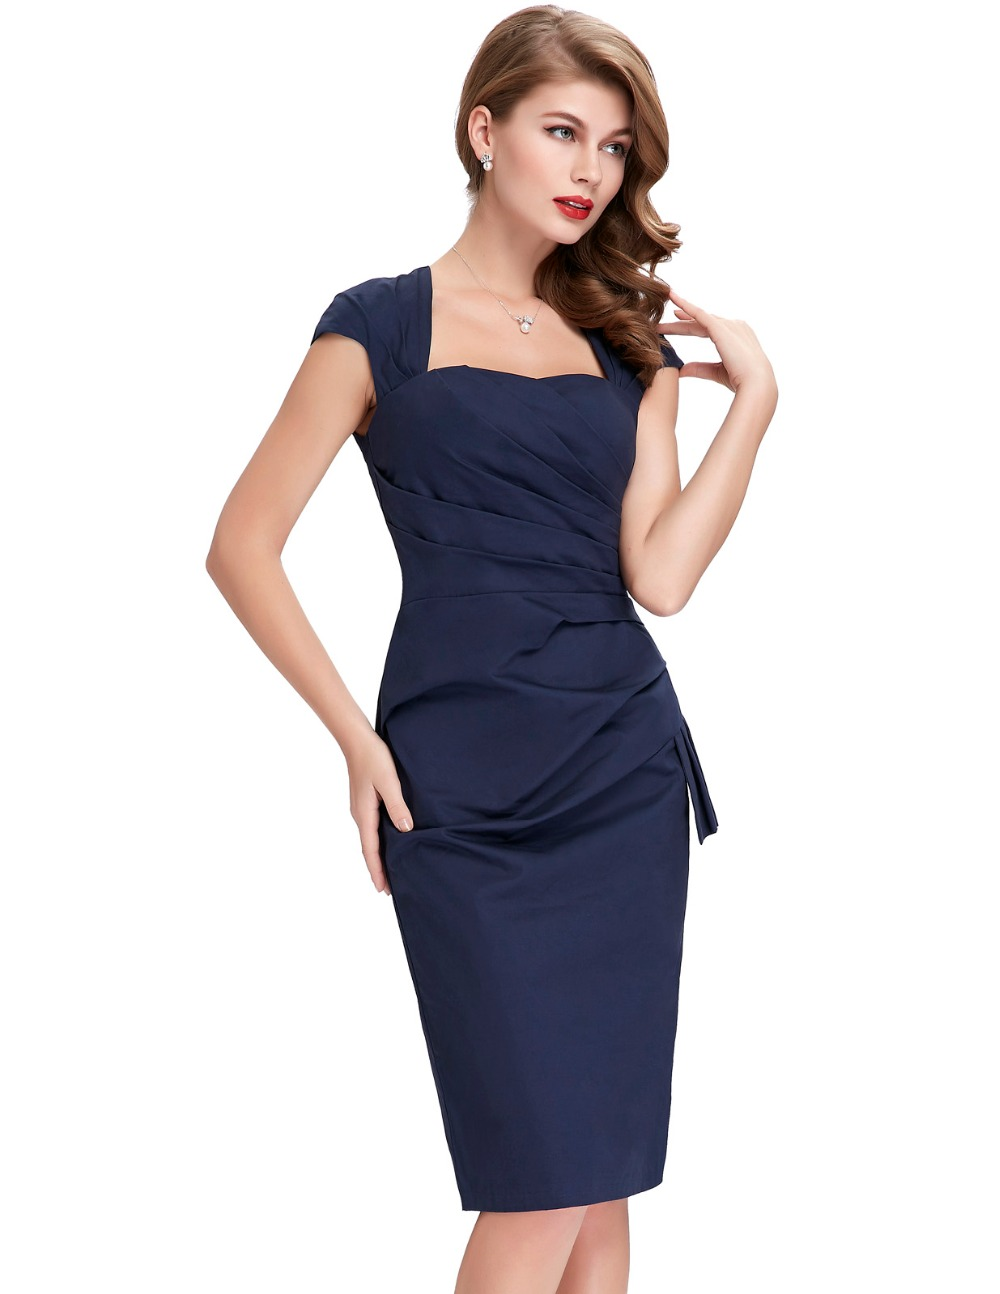 Popular 60s Fashion Buy Cheap 60s Fashion Lots From China